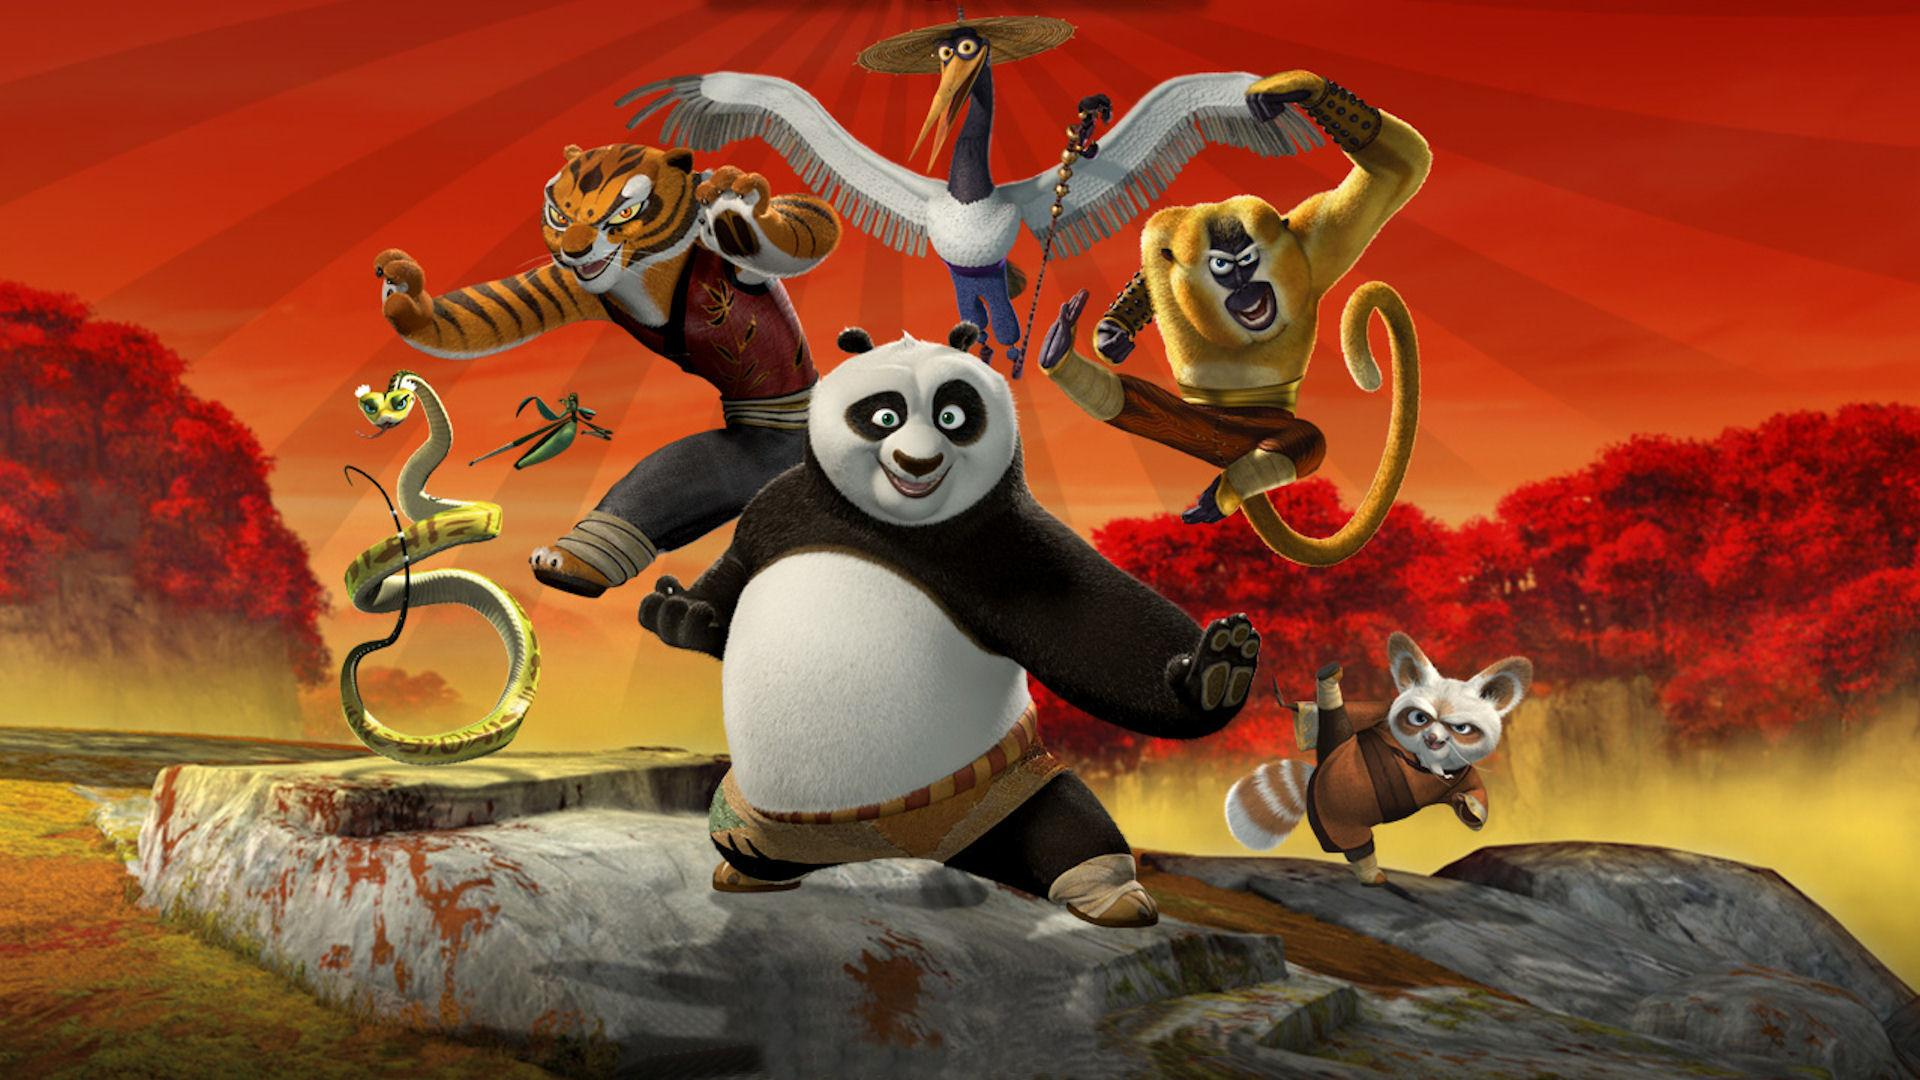 Kung Fu Panda 3 Release Date, News, Casting: All the Spoilers we know about Kung Fu Panda 3; Additional Director, Po will Have 2 enemies and etc.